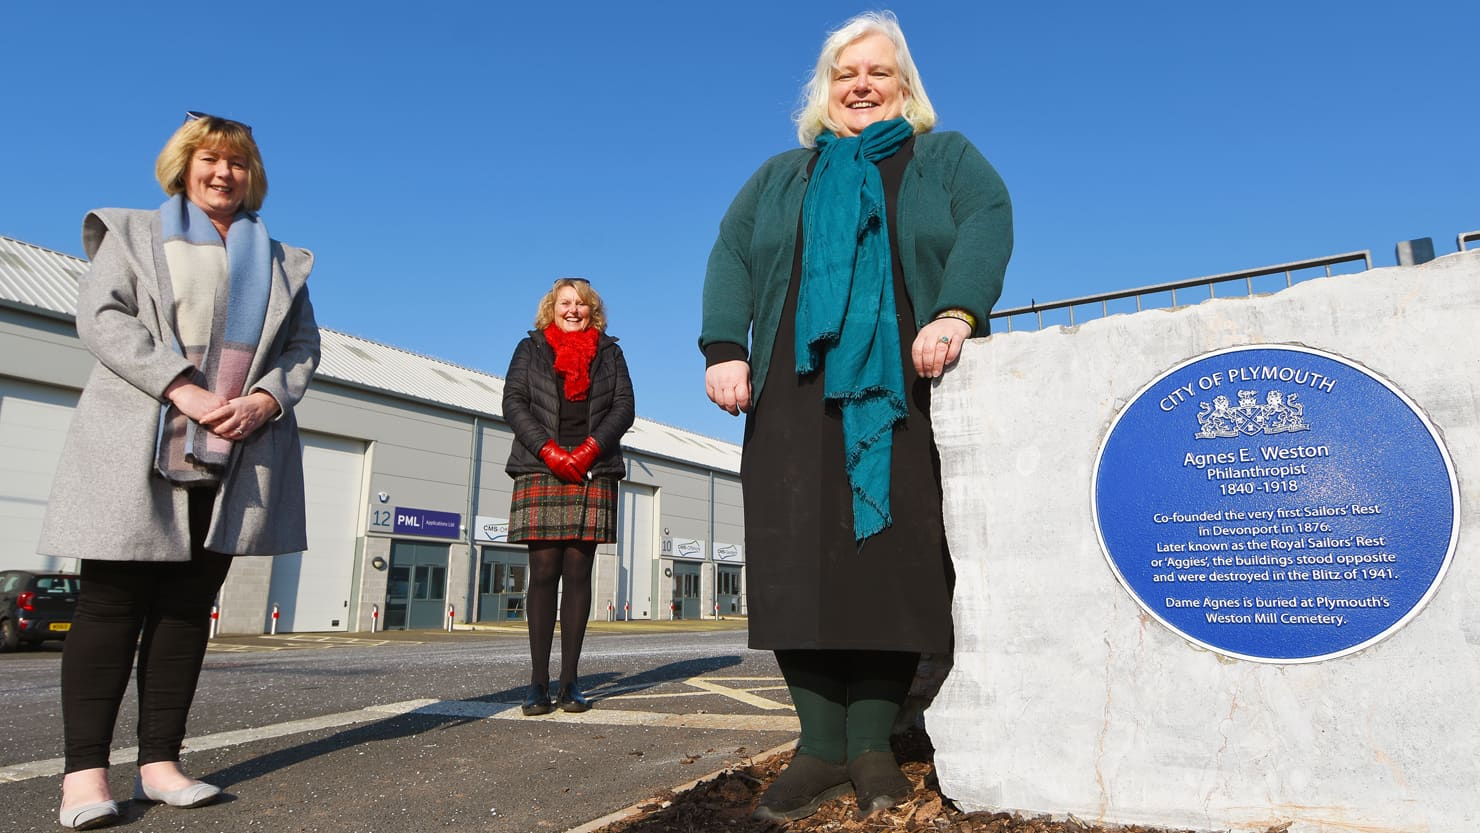 From L-R: Councillor Sally Haydon, Councillor Sue Dann and Councillor Jemima Laing visited the Aggie Weston plaque to mark International Women's Day 2021